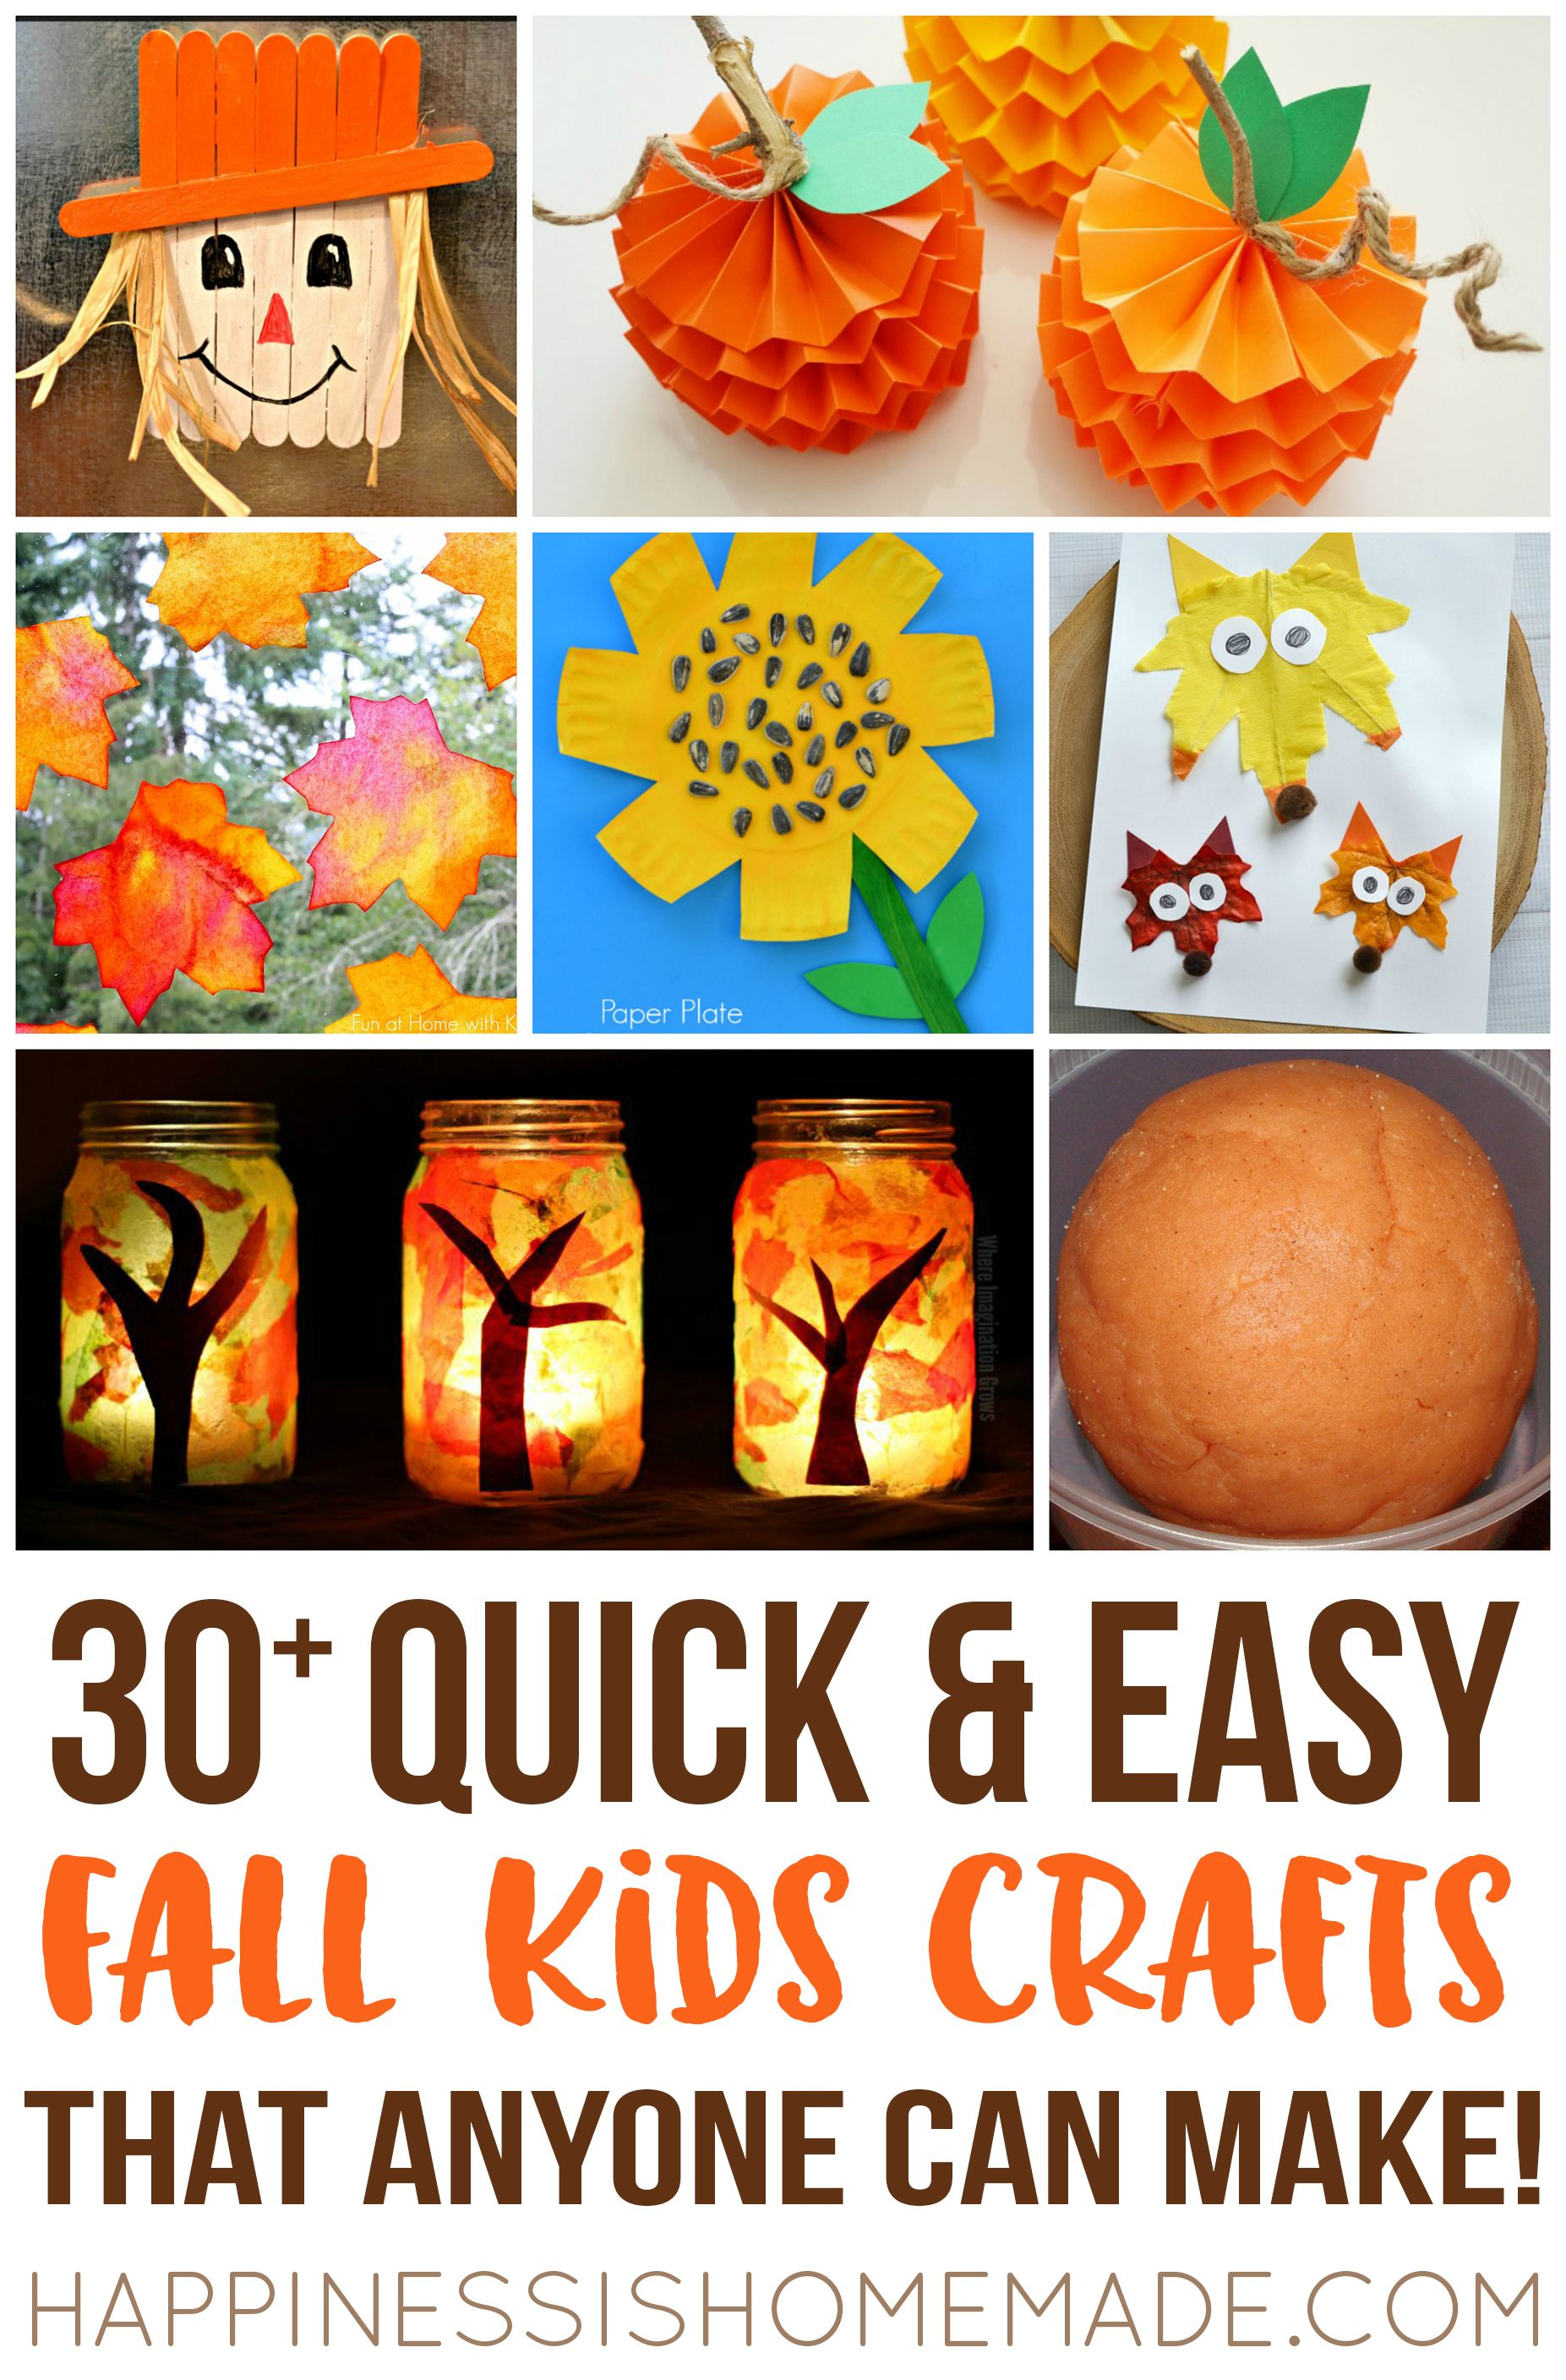 Easy Fall Kids Crafts That Anyone Can Make: Make These Quick & Easy Fall Kids Crafts In Under 30